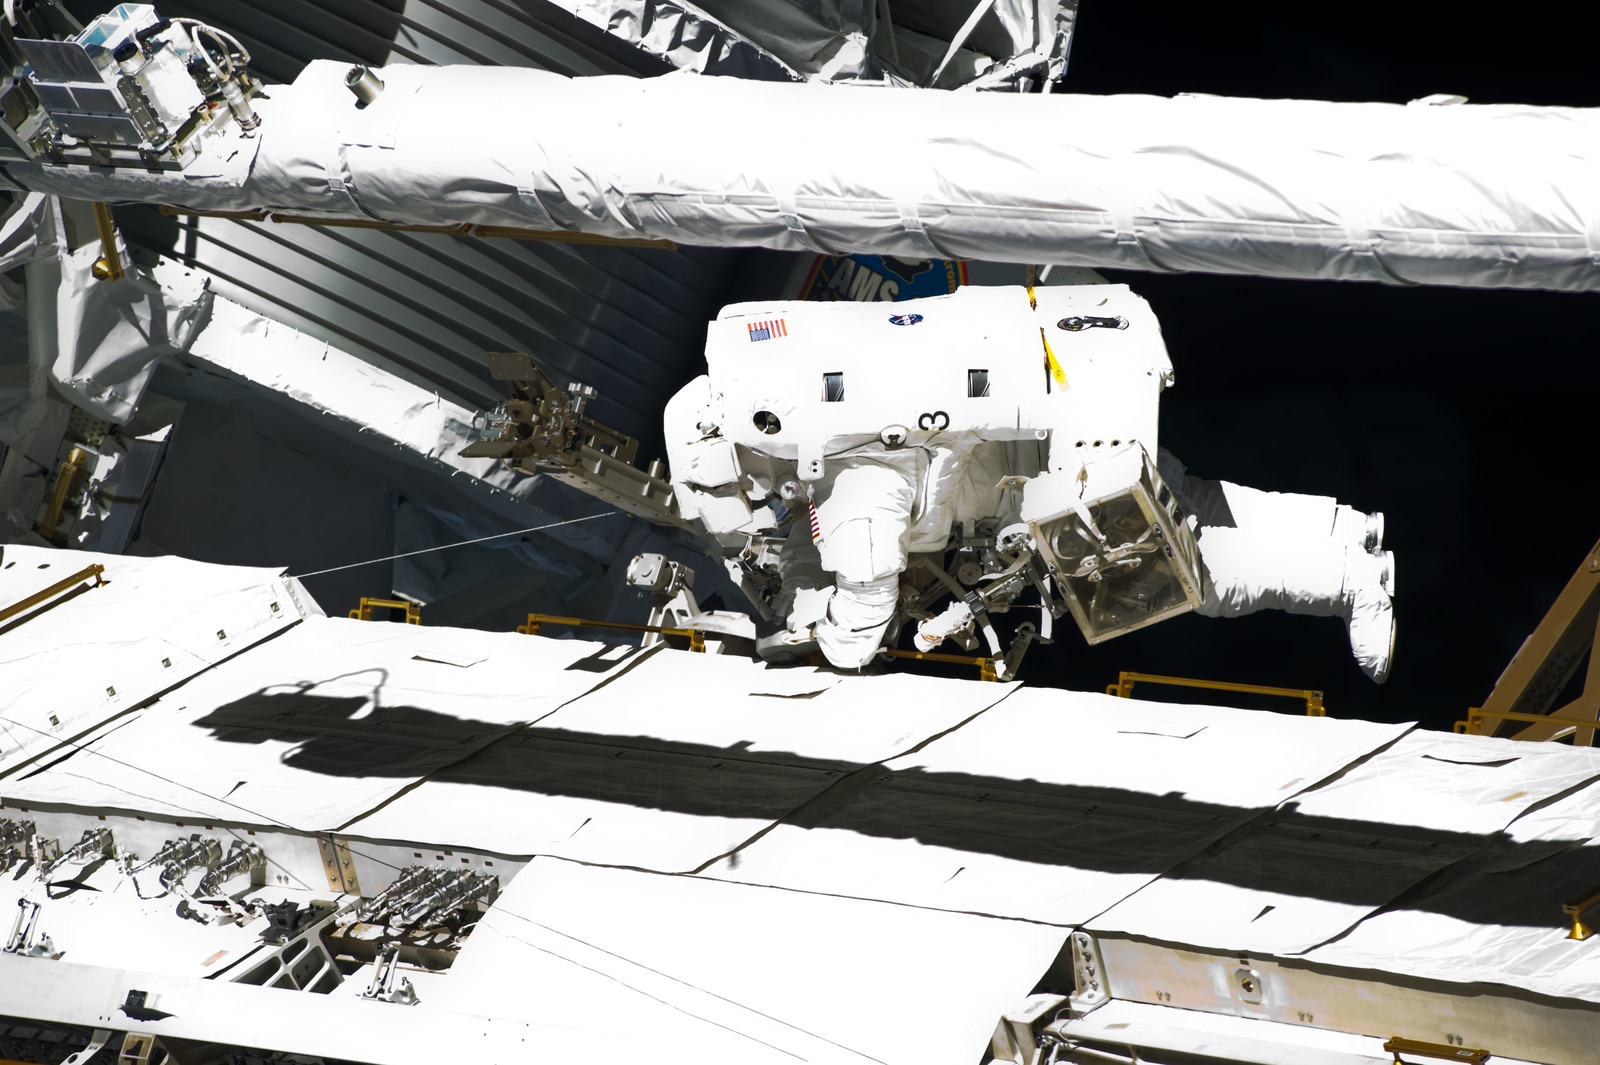 S134E009613 - STS-134 - View of STS-134 MS Fincke during EVA-4